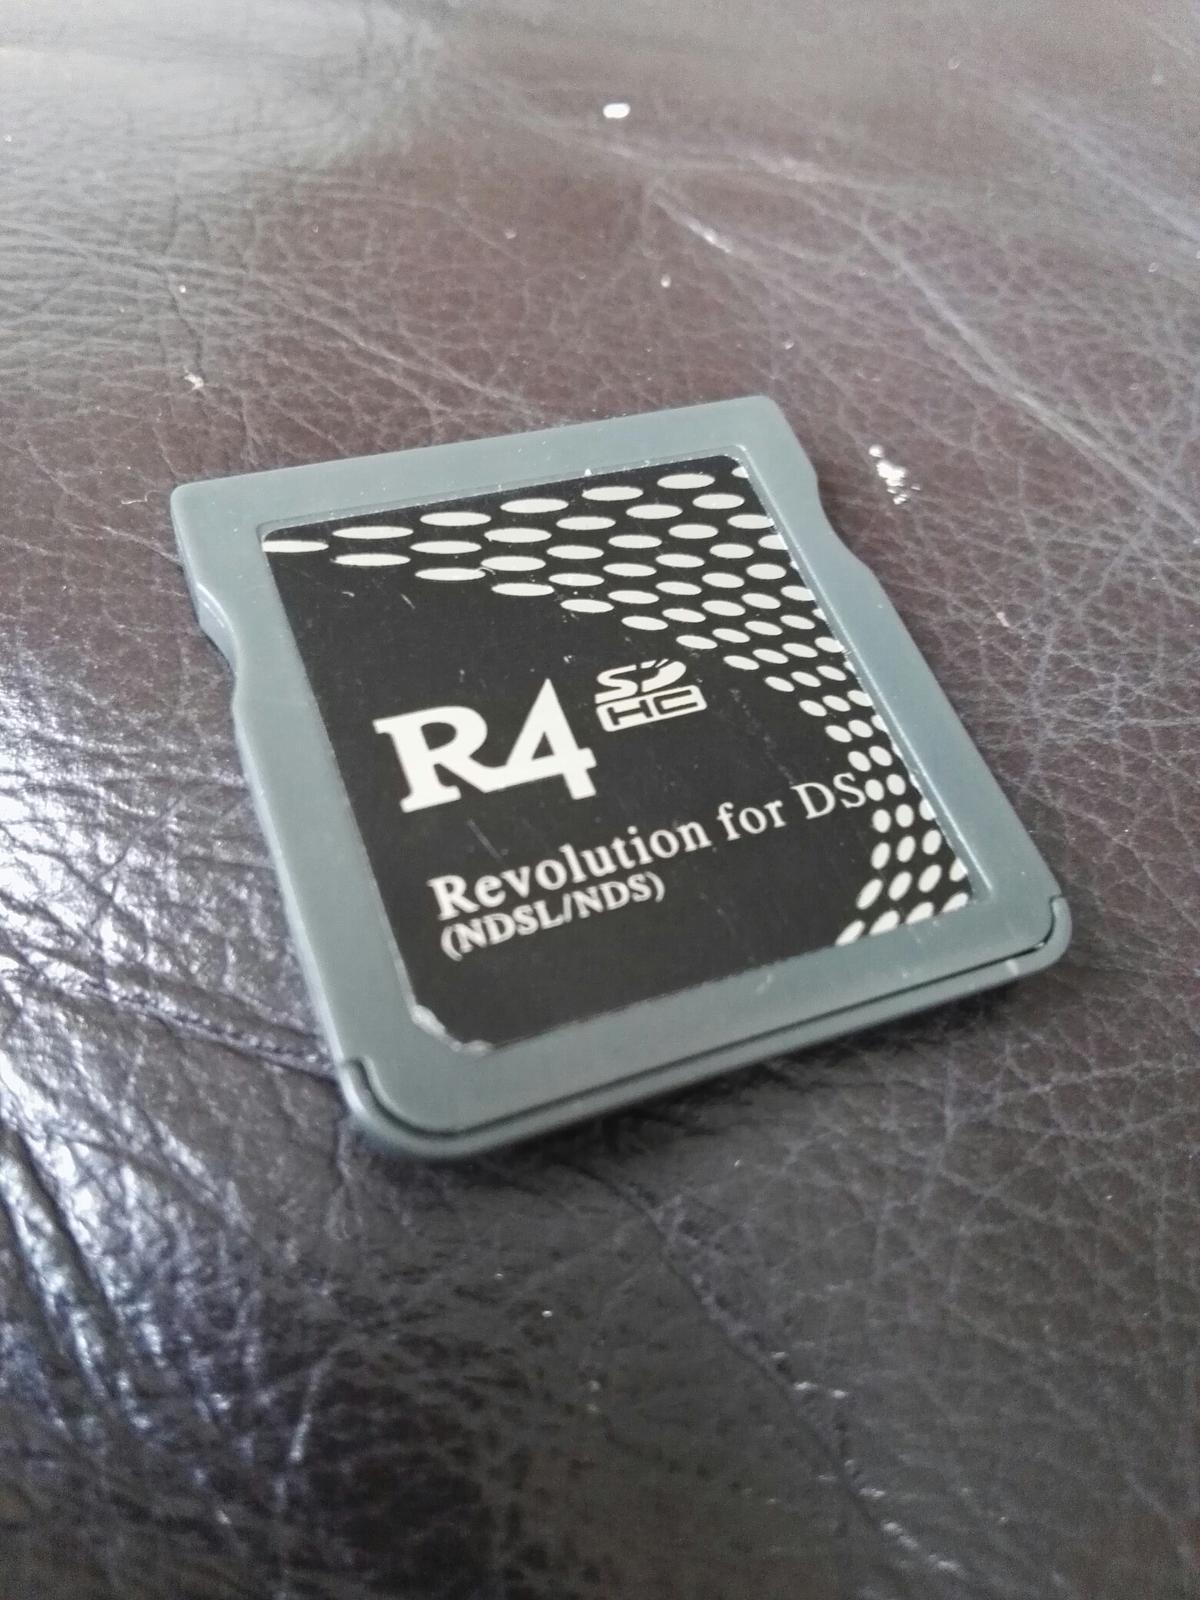 R4 3ds Firmware Install